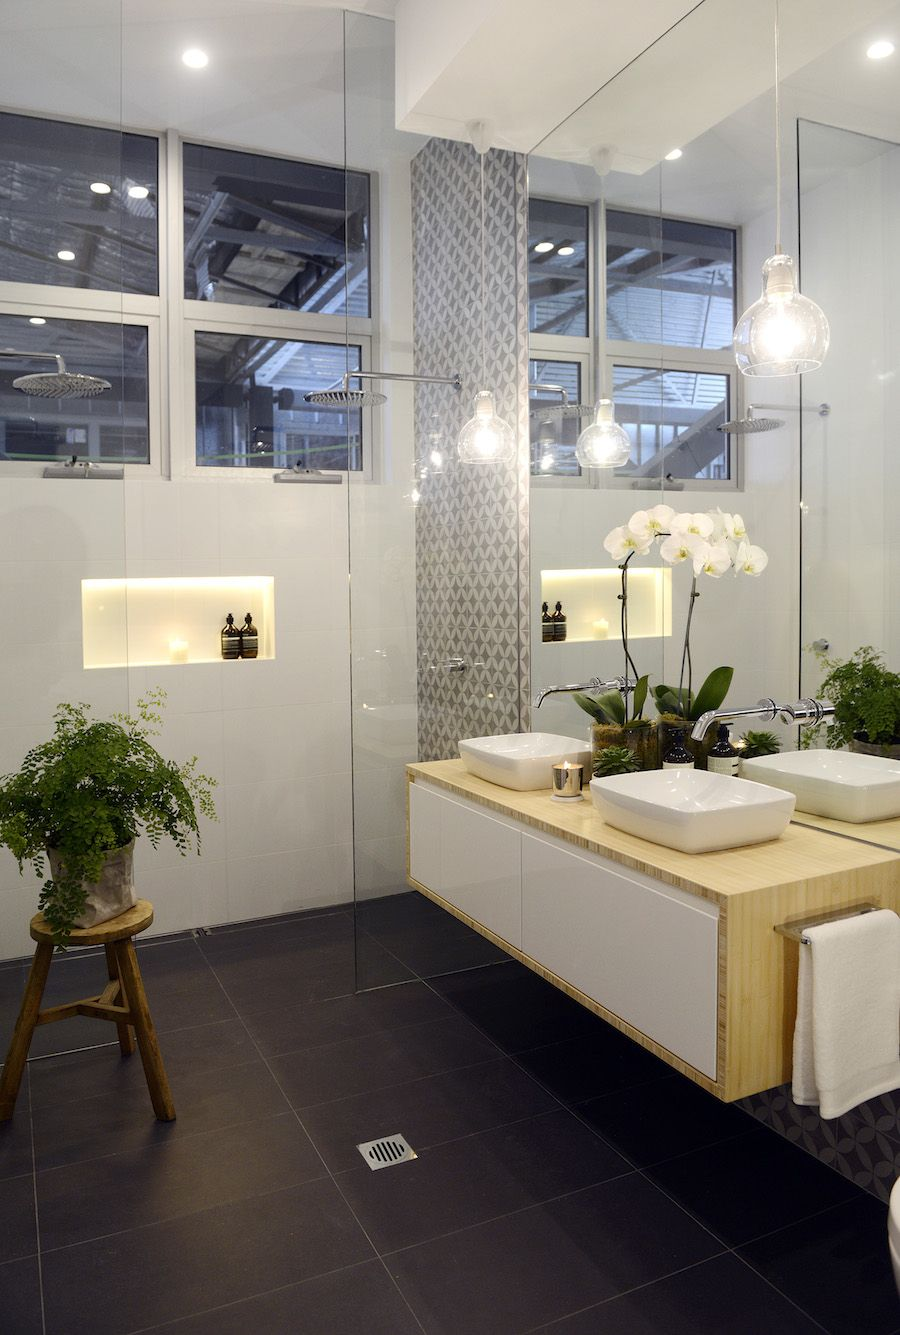 Bathroom Ideas The Block the block glasshouse: apartment 6 week 1 | timber vanity